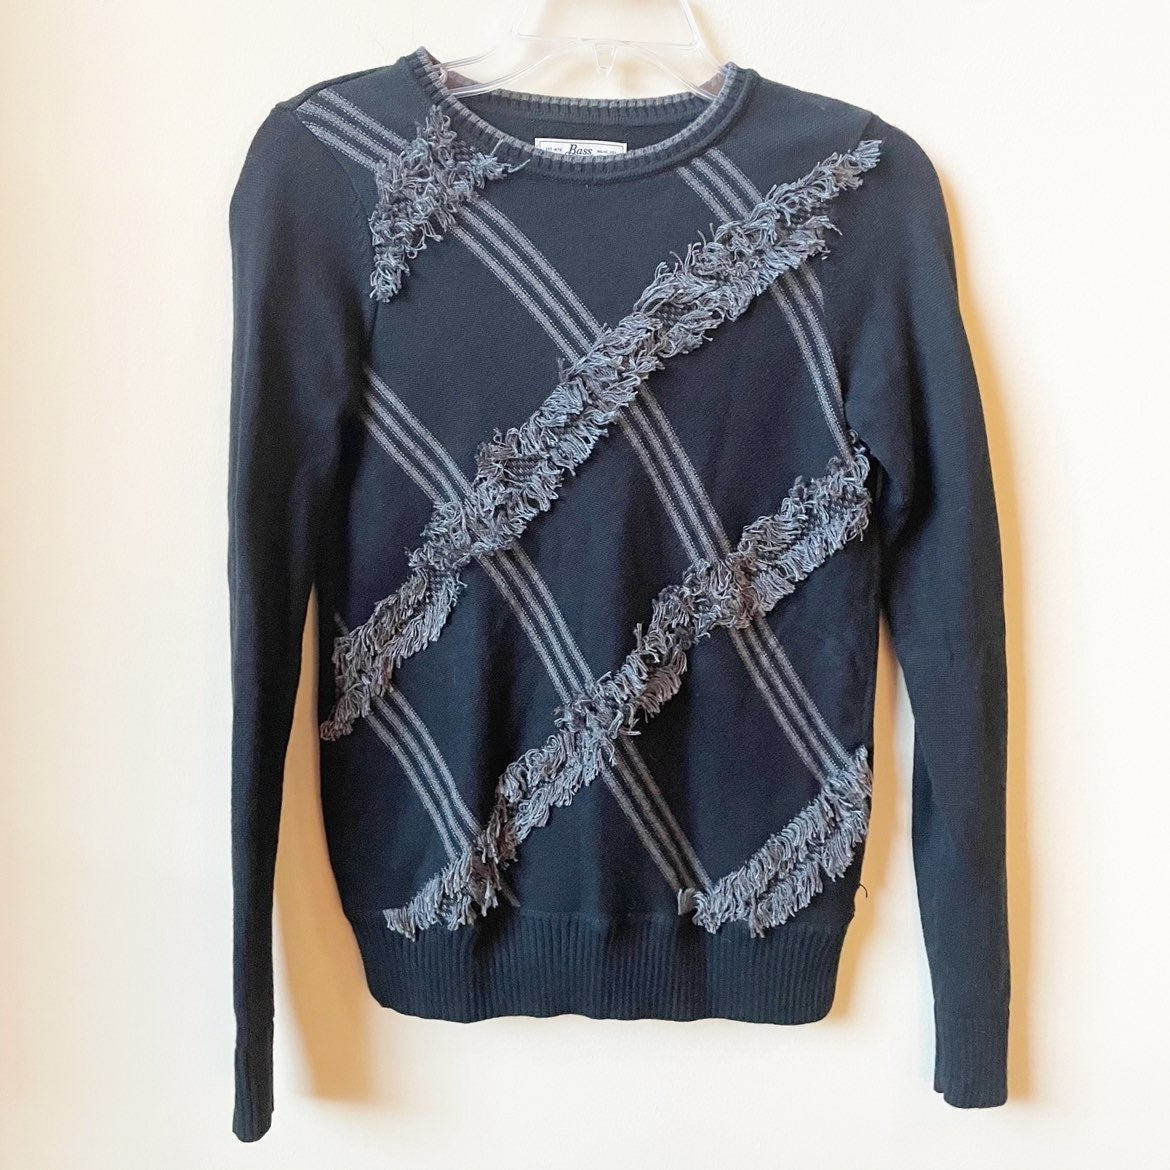 G.H. Bass & Co fringe sweater size small